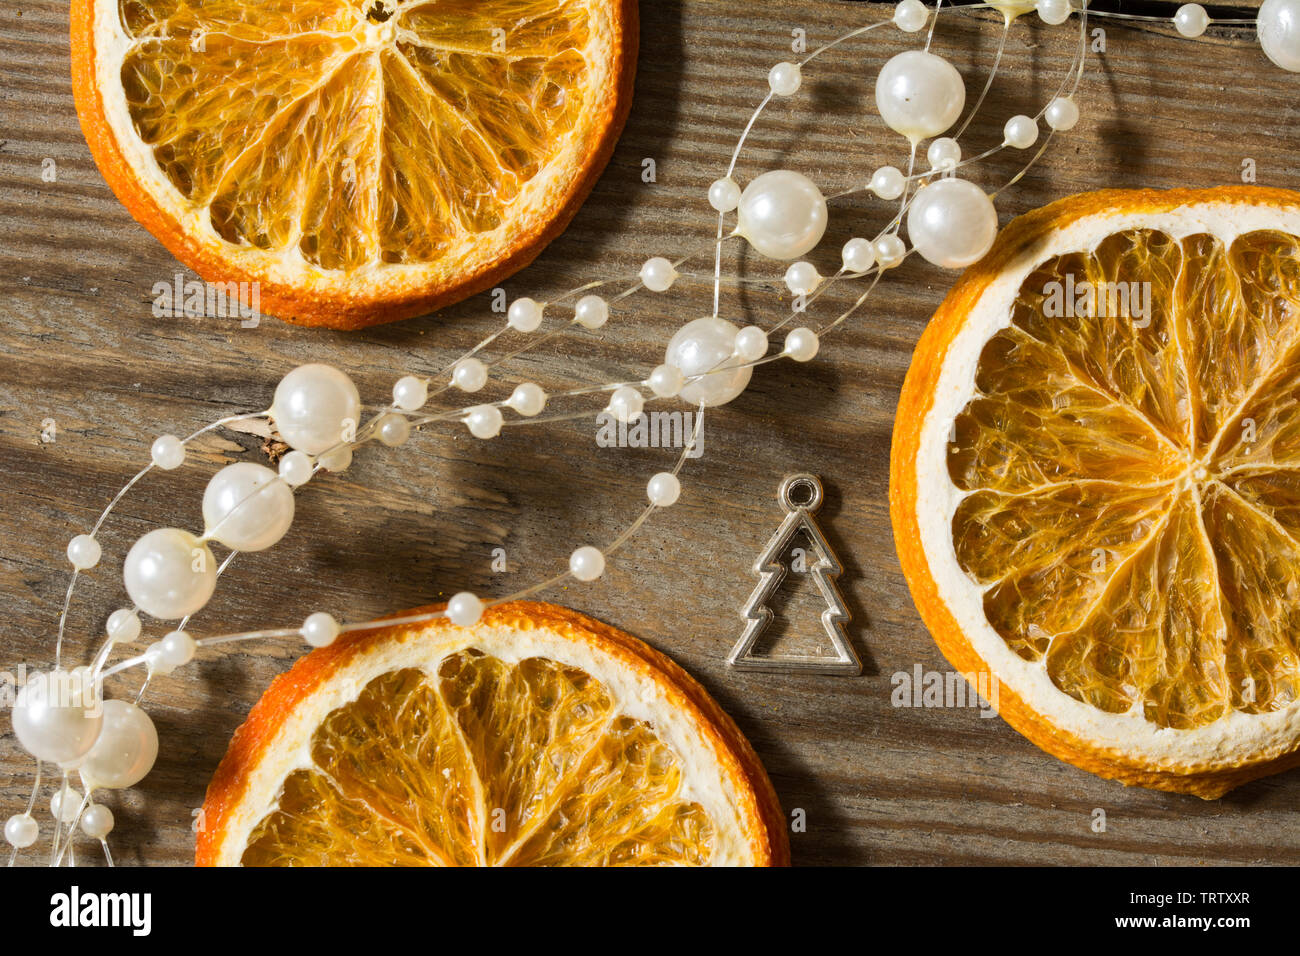 Christmas composition with dried oranges, white bead chain and silver christmas tree shape on wooden background - close-up - Stock Image